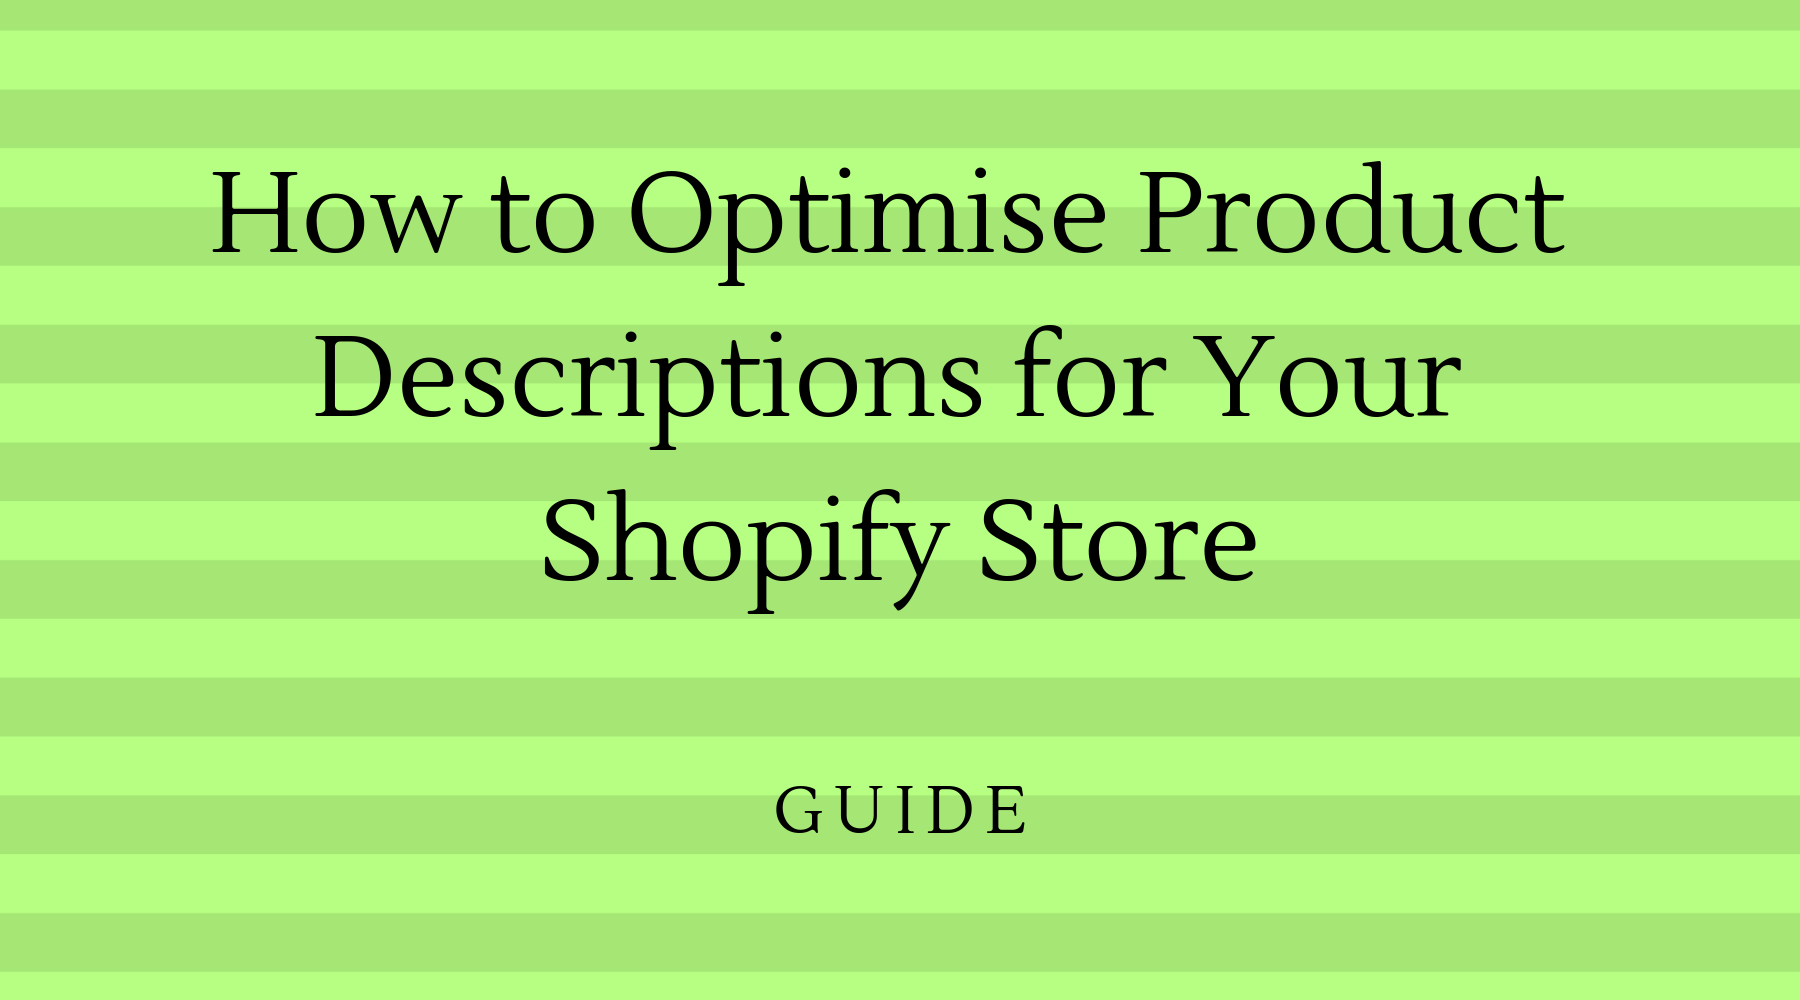 How to Optimise Product Descriptions for Your Shopify Store